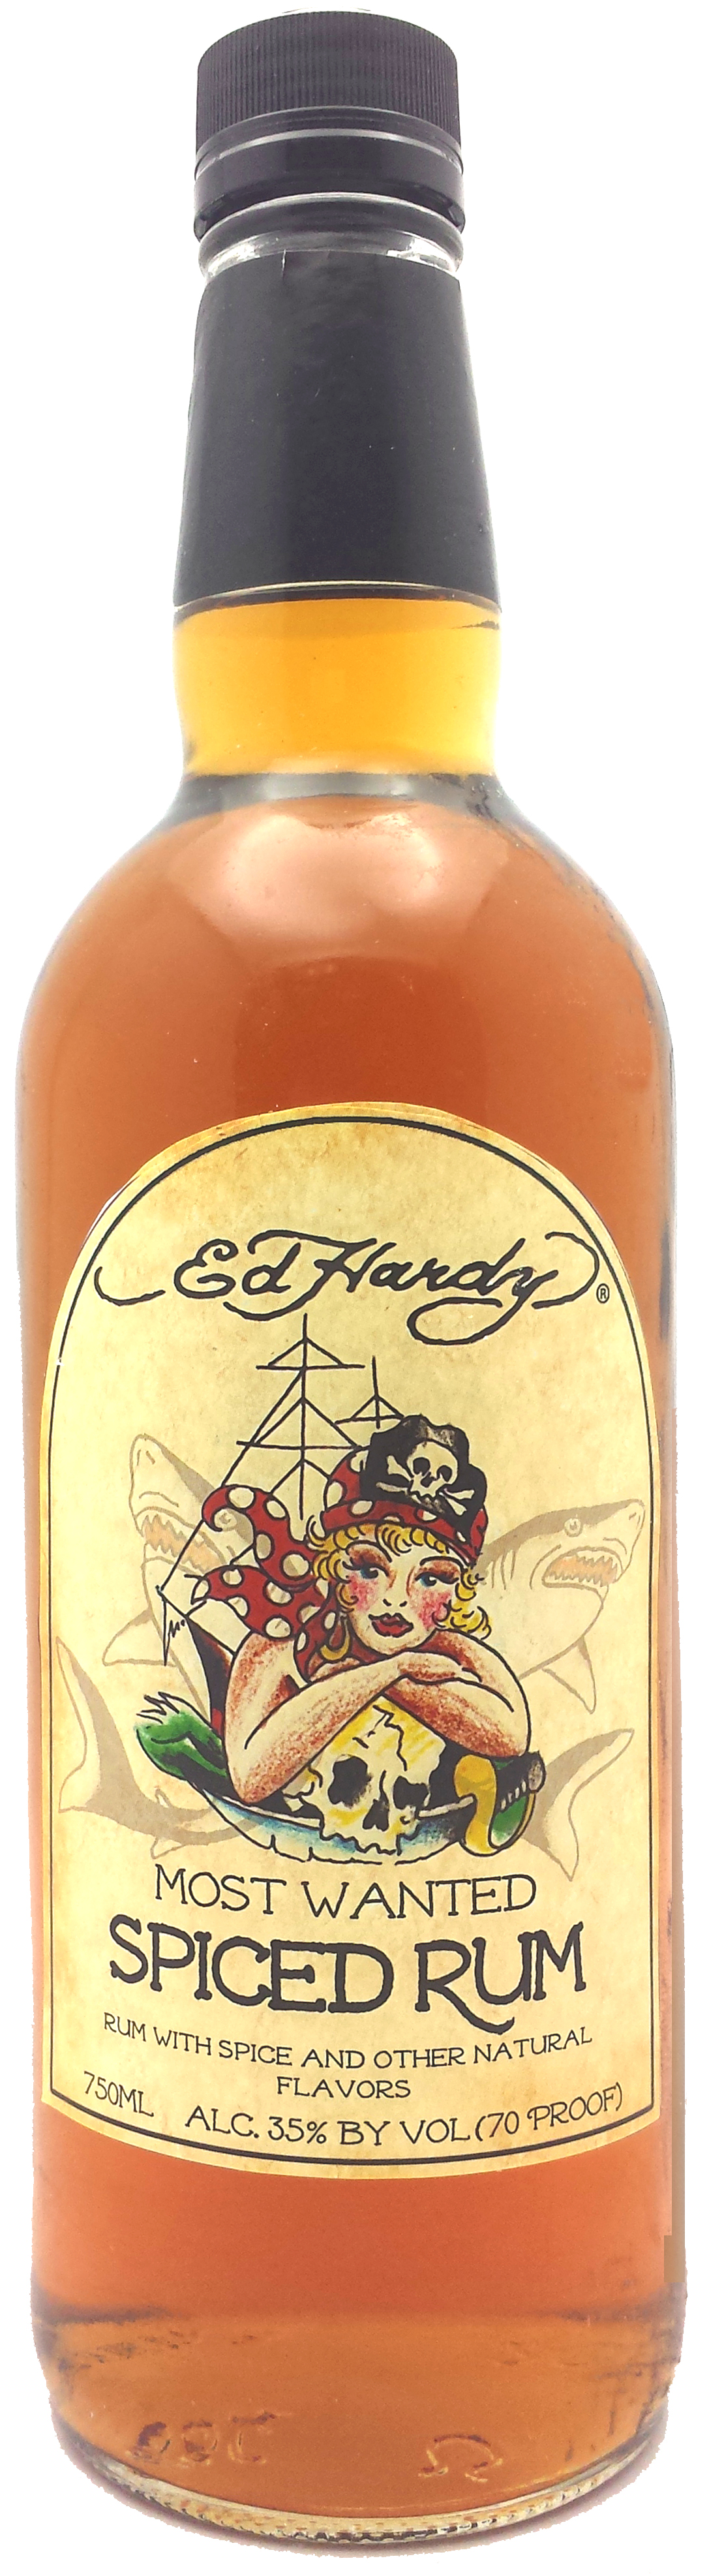 "Ed Hardy ""Most Wanted"" Spiced Rum"